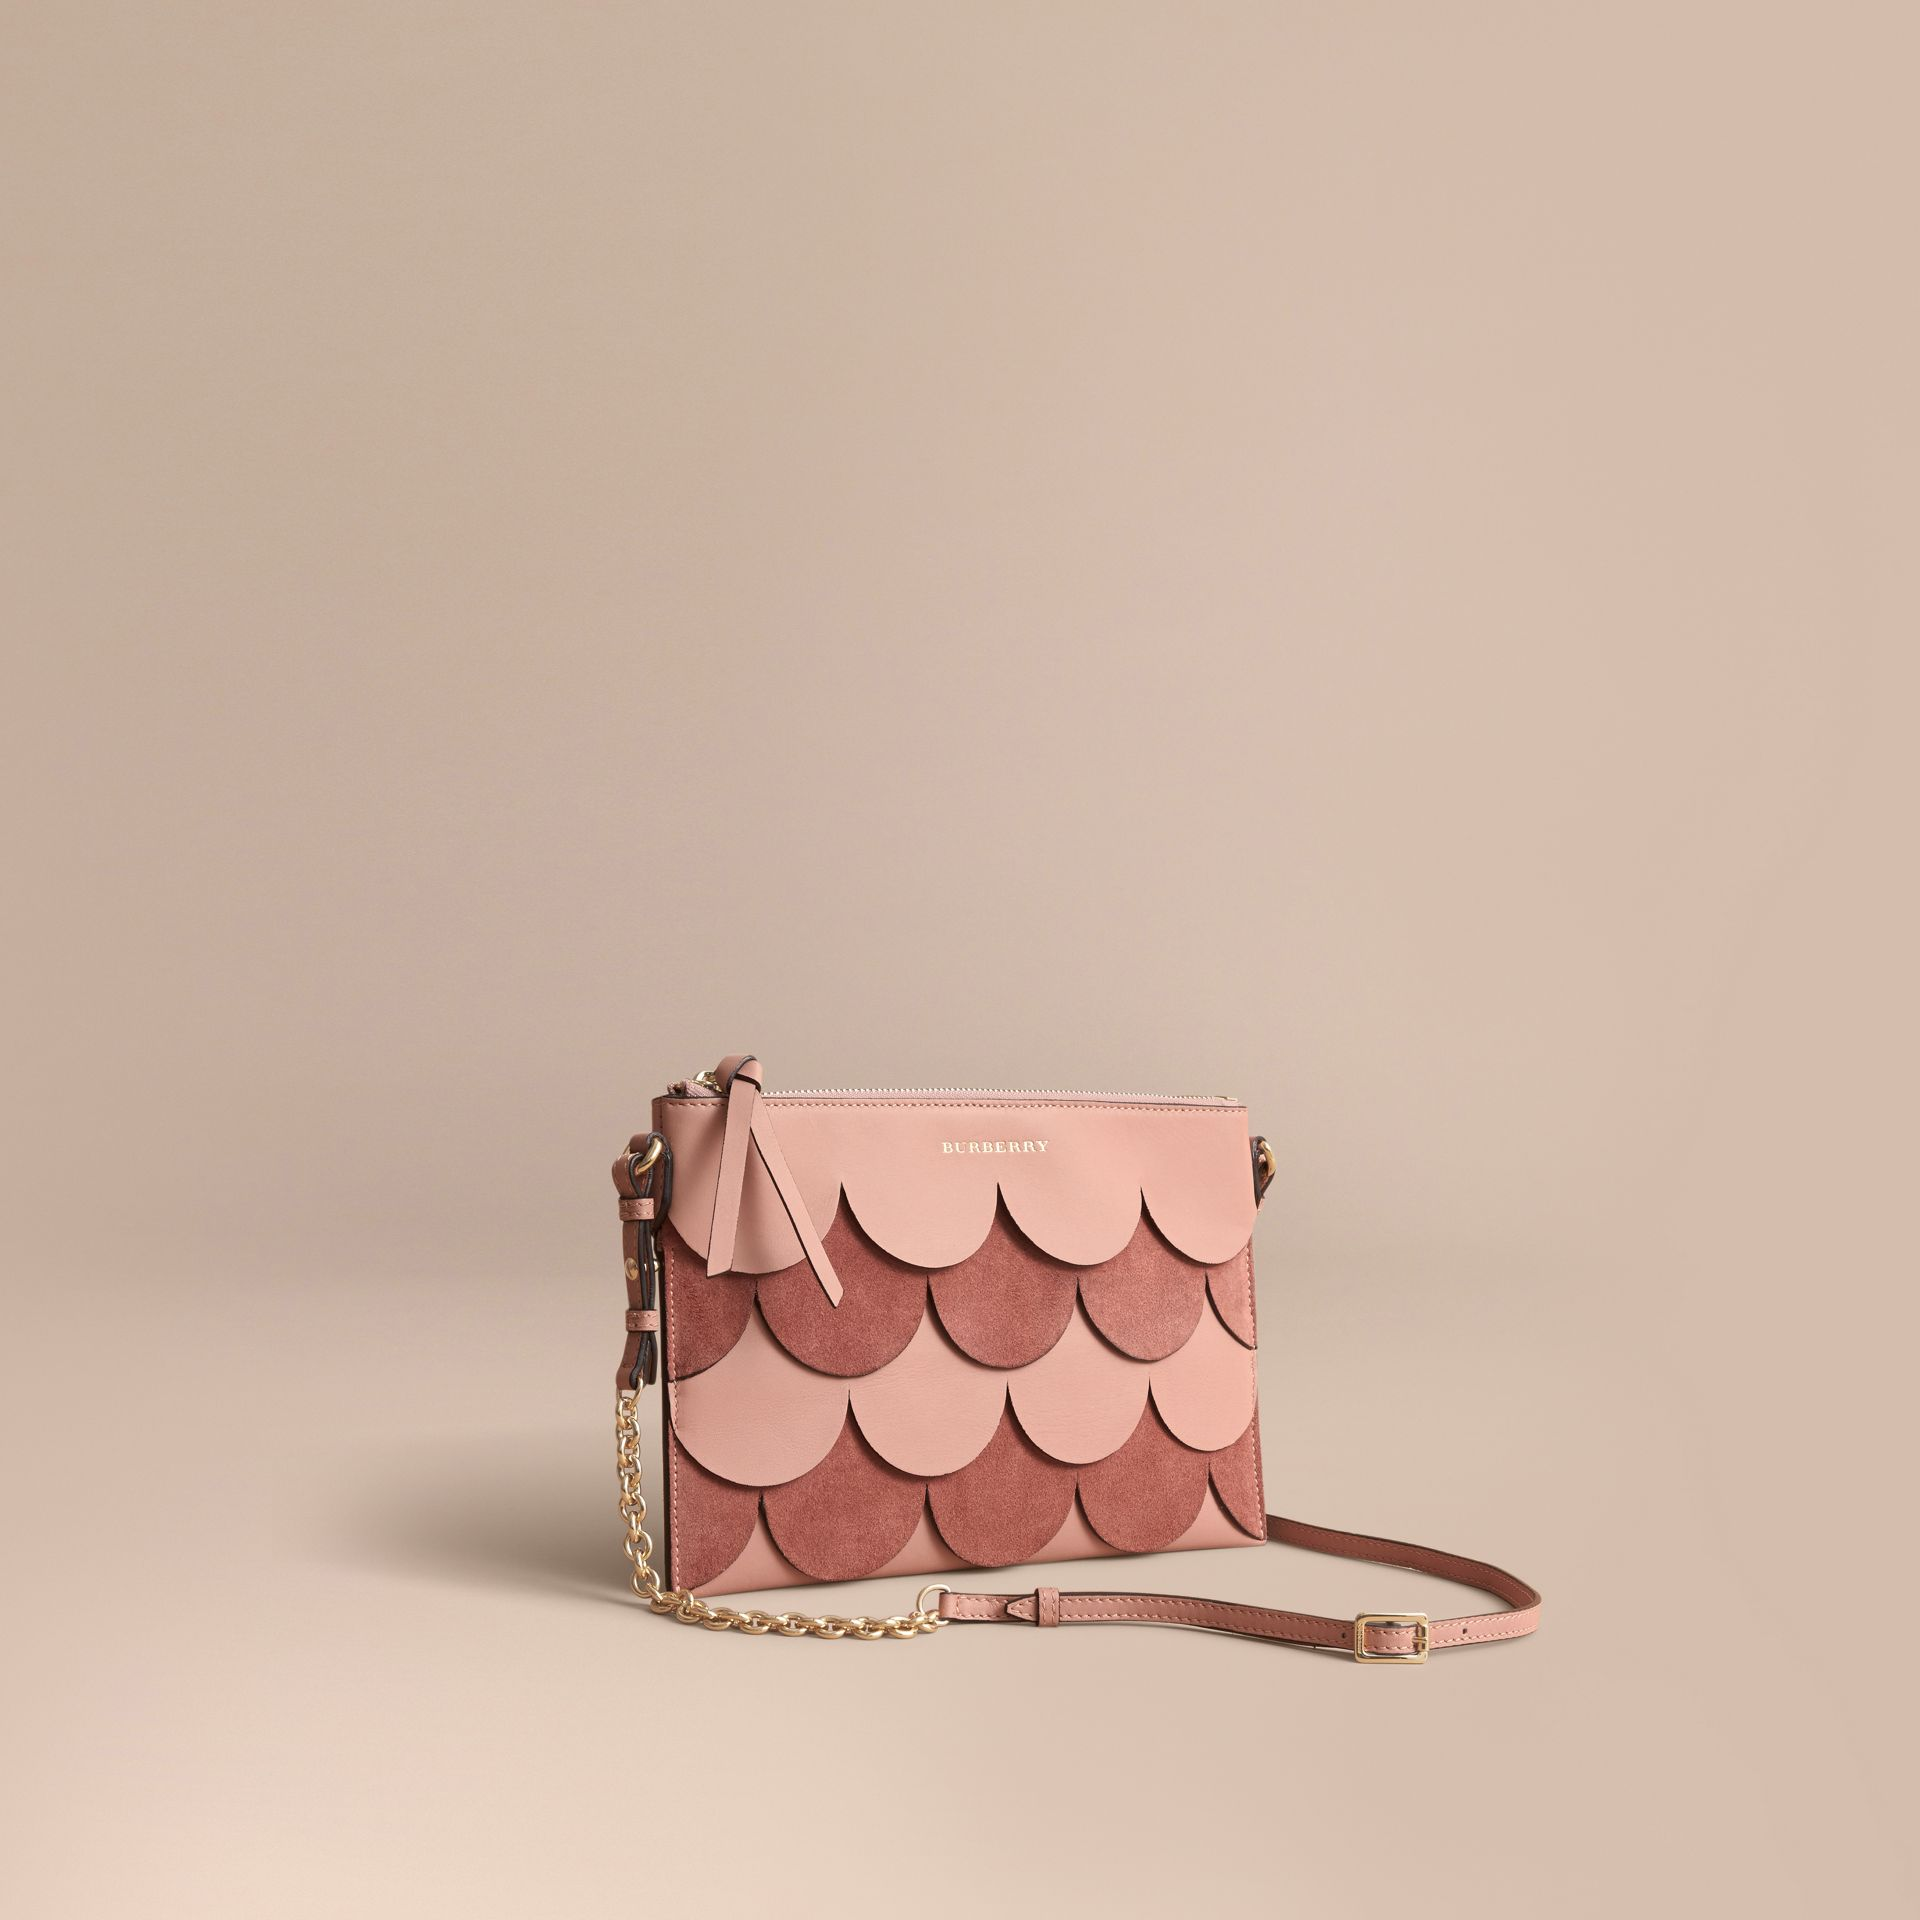 Two-tone Scalloped Leather and Suede Clutch Bag in Ash Rose - Women | Burberry Singapore - gallery image 1